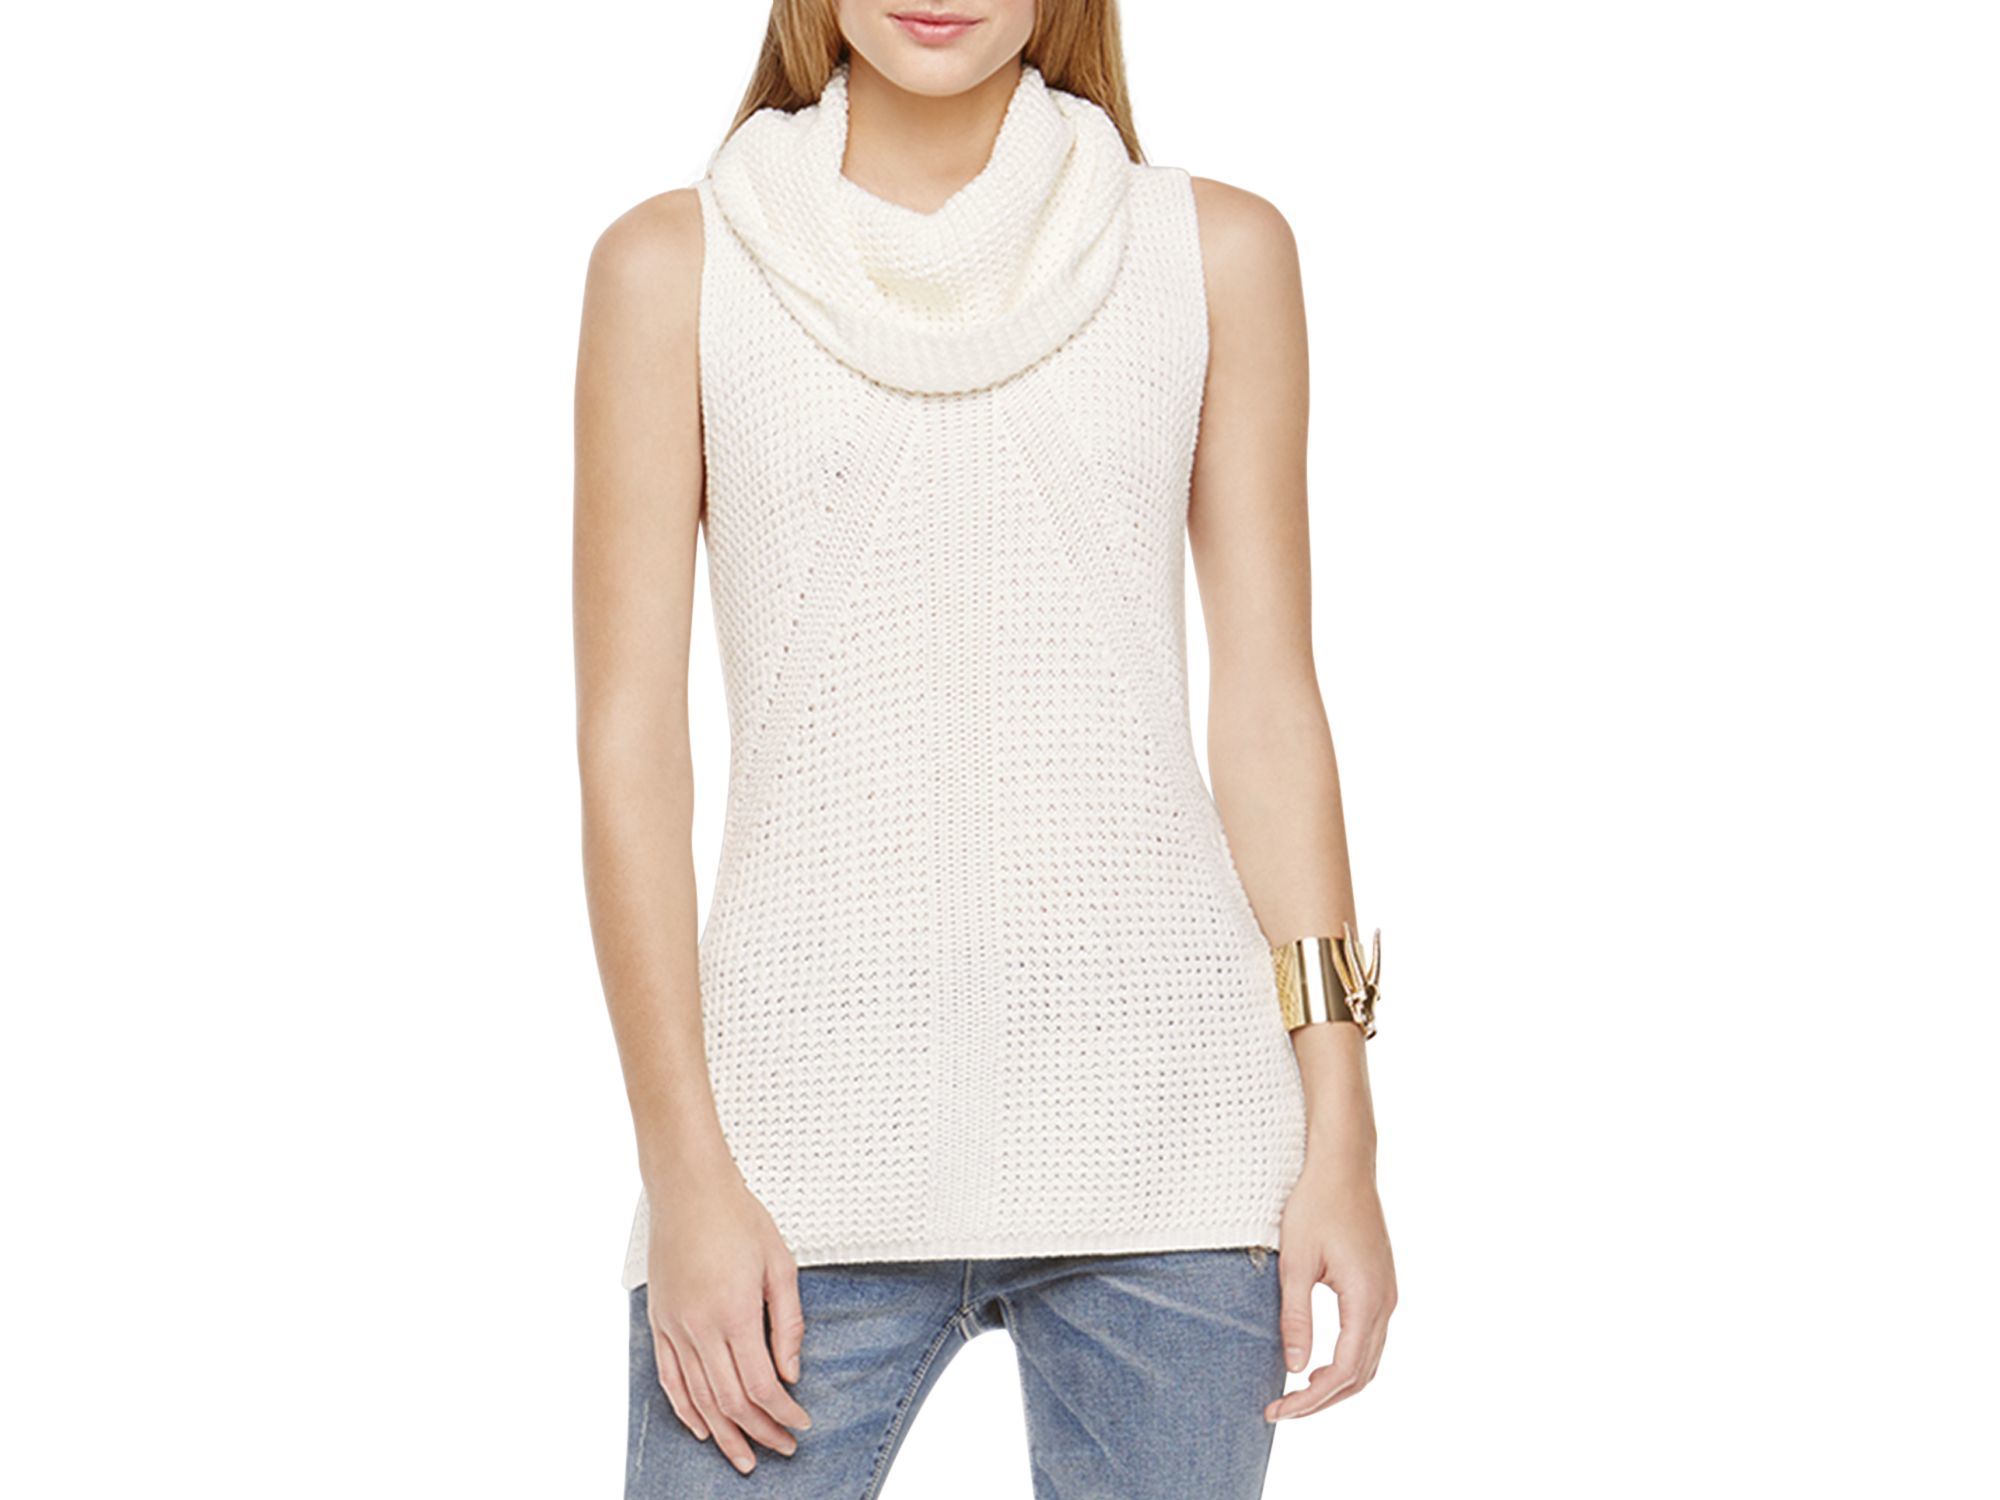 1da845add87f4d Lyst - Two By Vince Camuto Sleeveless Turtleneck Sweater in White